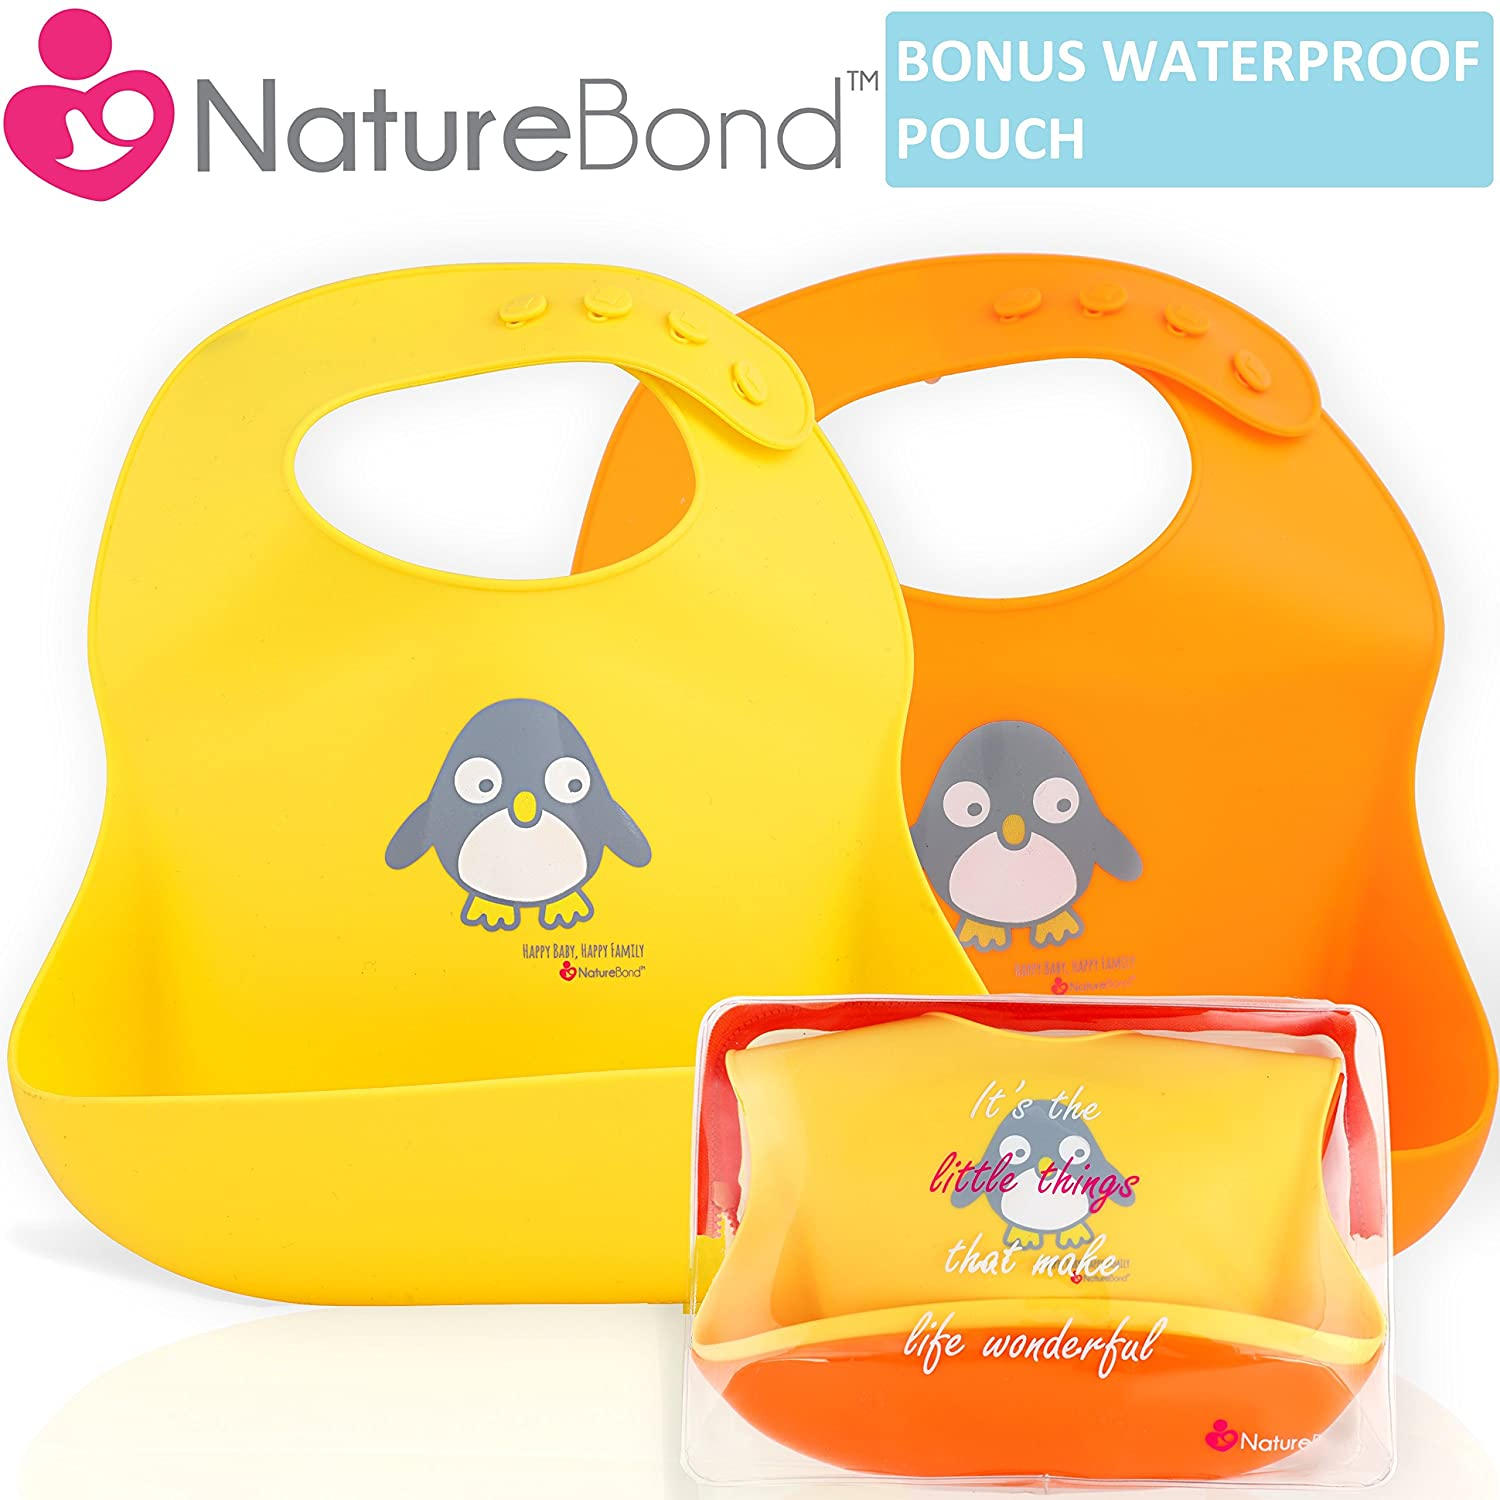 NatureBond Waterproof Silicone Baby Bibs For Babies & Toddlers (2 PCs) | FREE Waterproof Pouch | Wipes Clean Easily, Soft, High Quality, Unisex, Adorable | Perfect Baby Shower Gift NB006